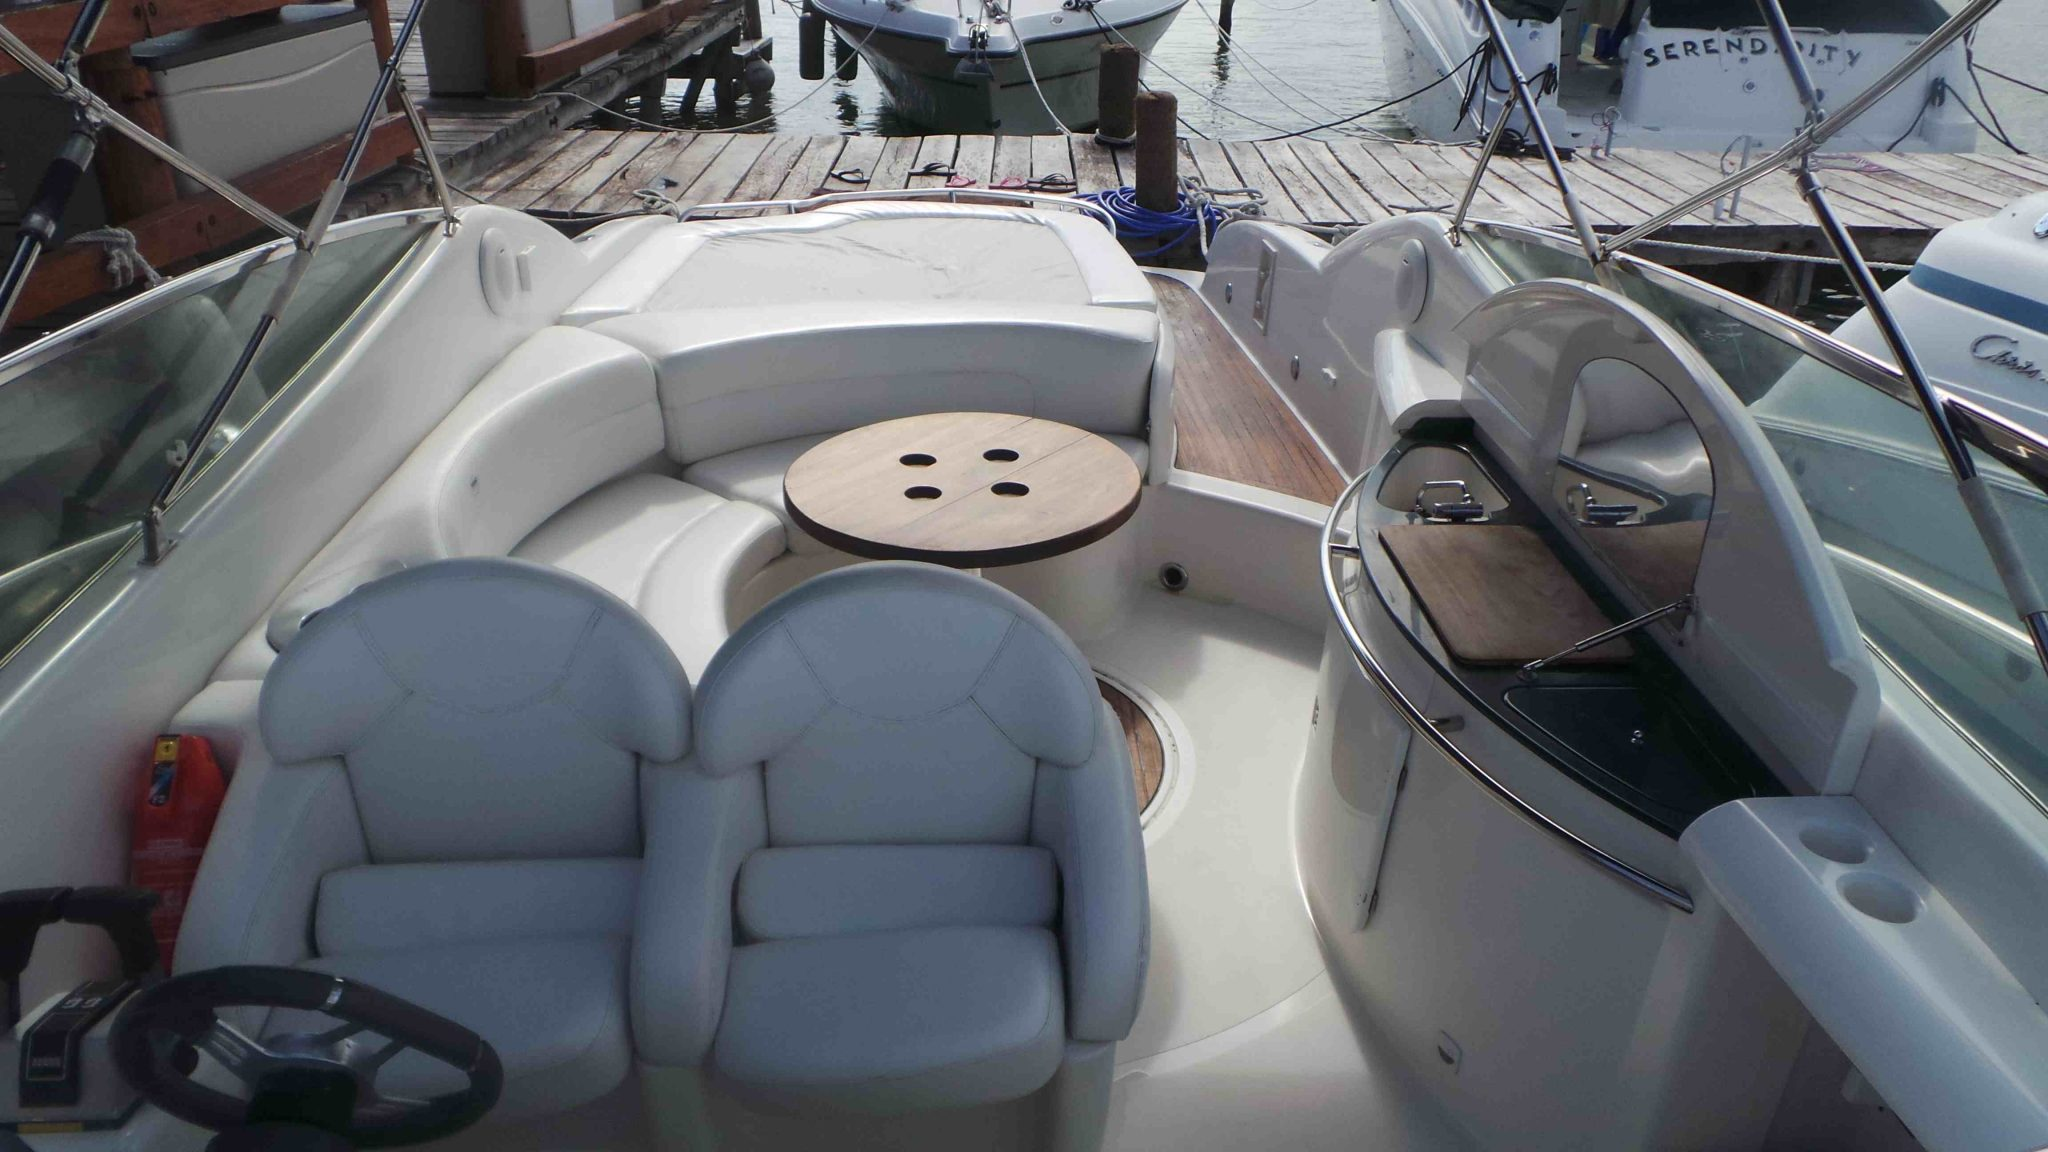 Yacht Charters in cancun luxury yacht for rent in cancun puerto aventuras and cozumel Sessa 35 feet